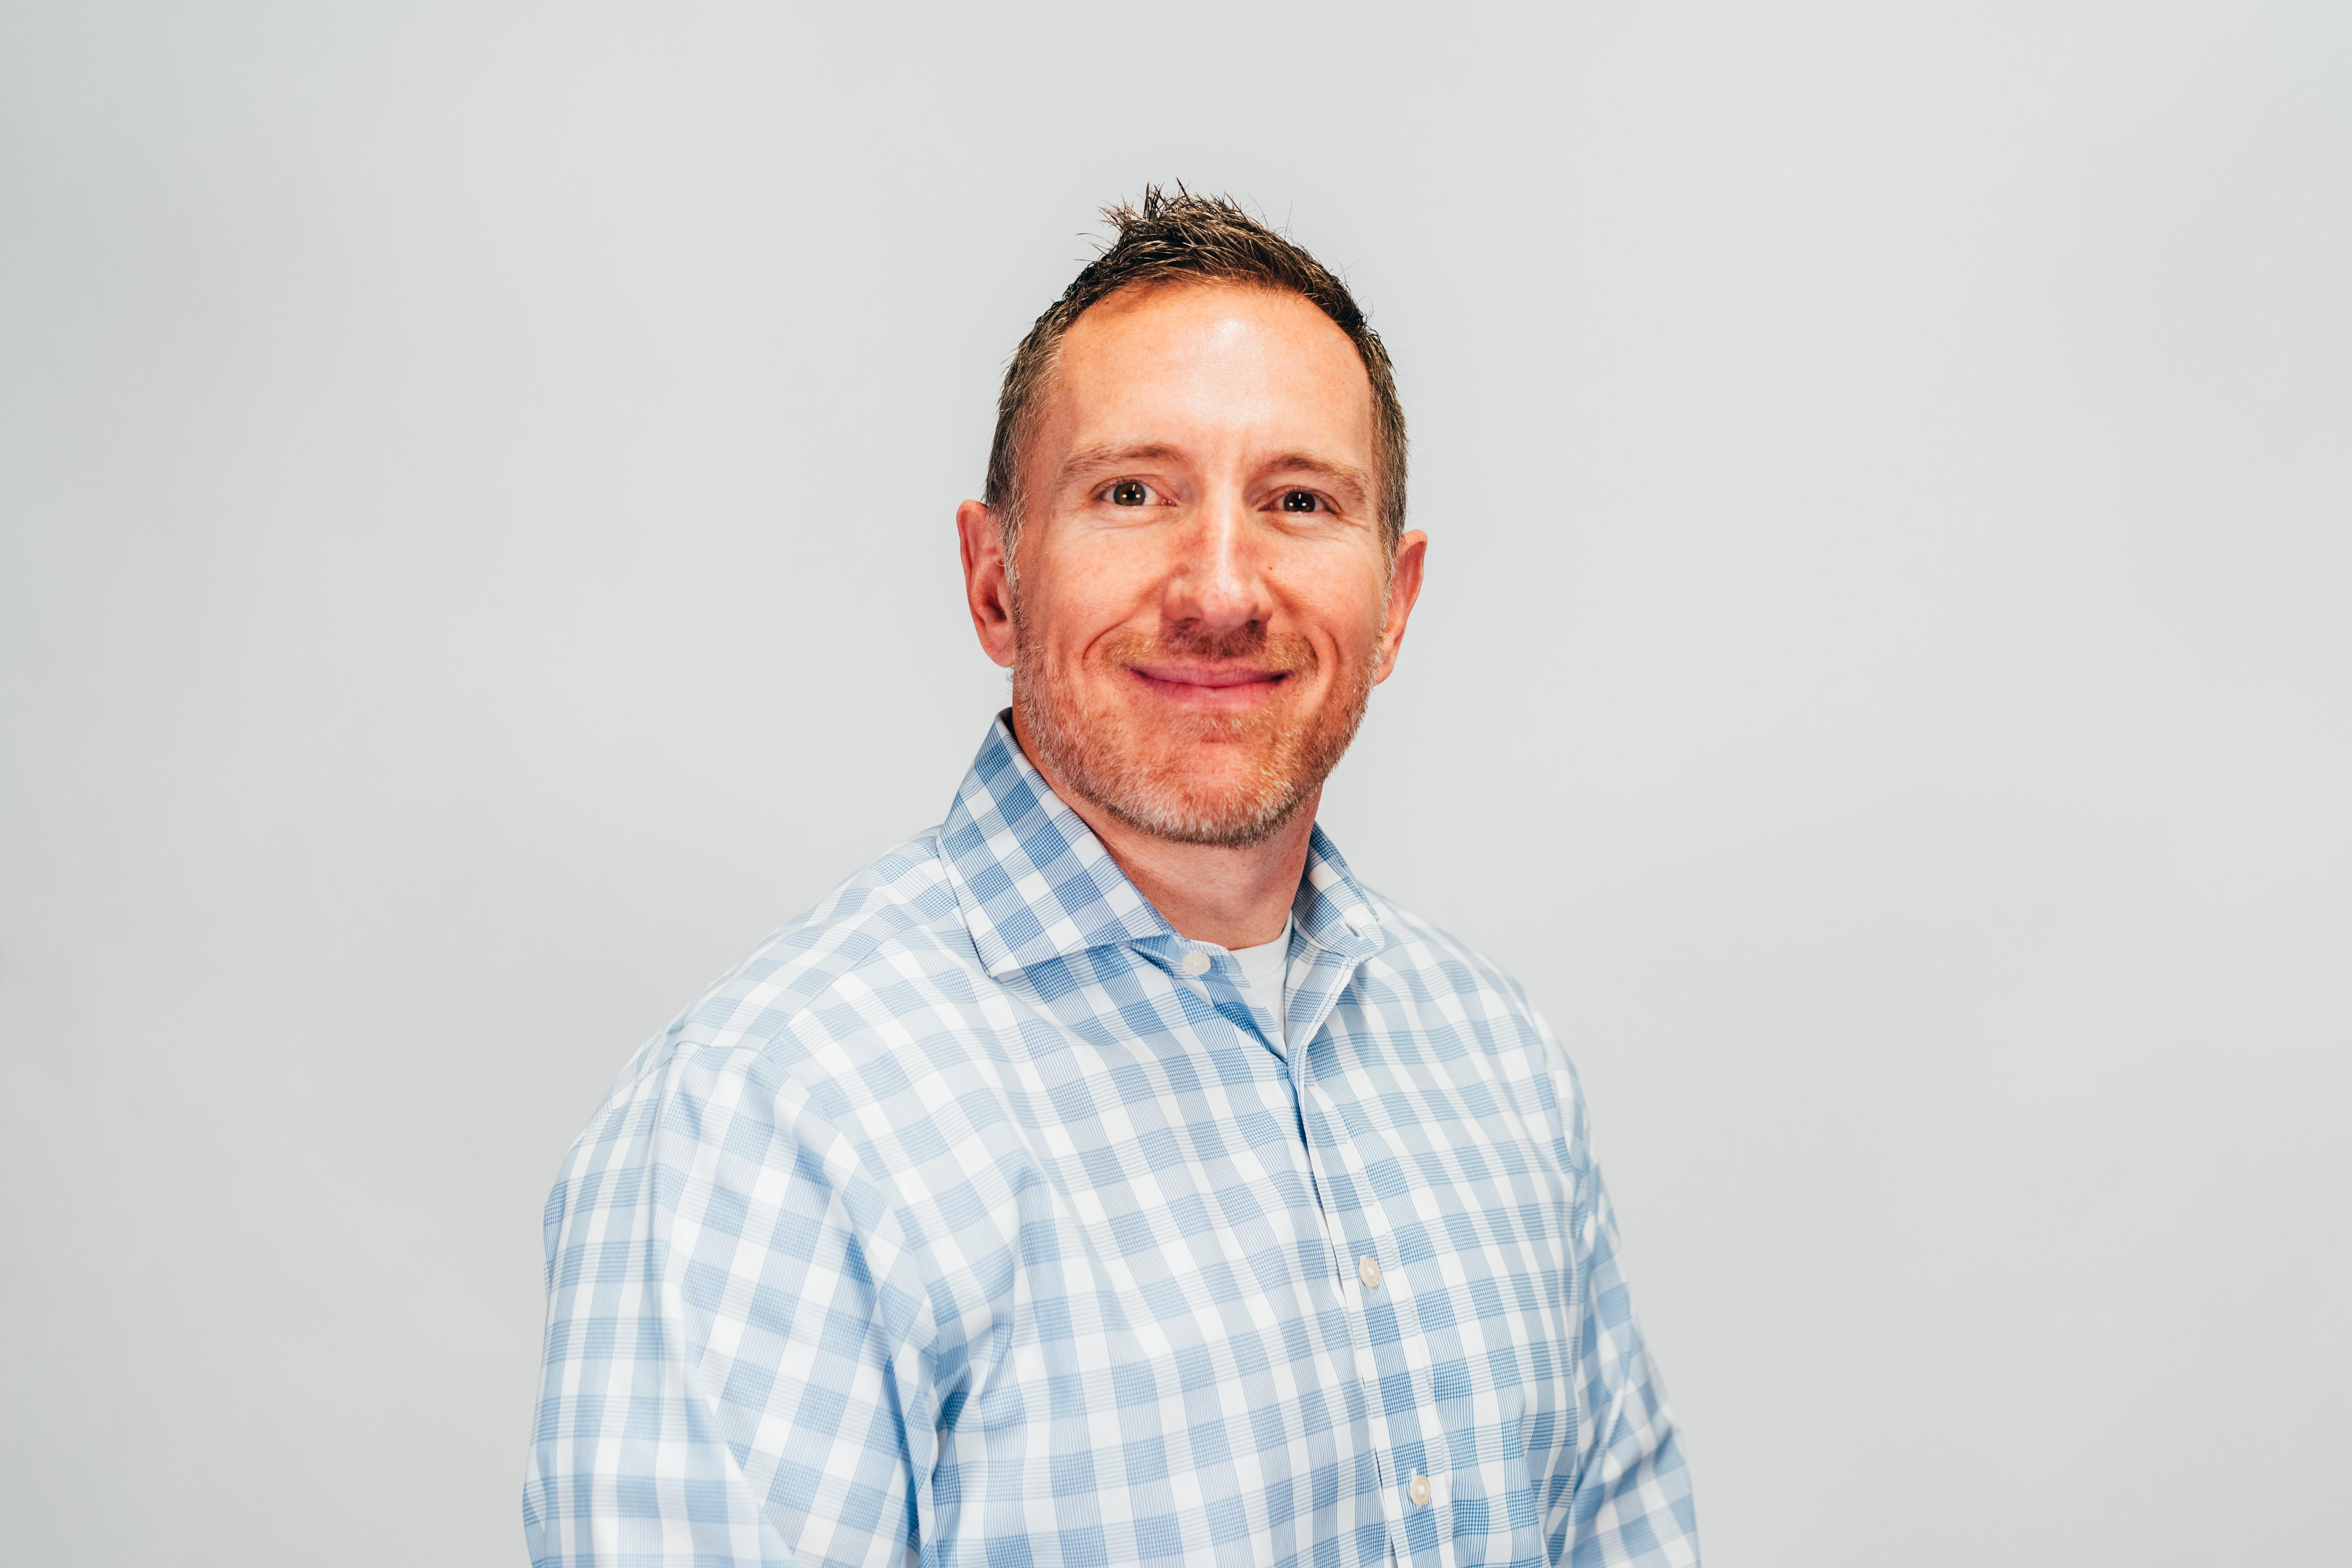 ClickBank Welcomes Ryan Vestal as Chief Financial Officer